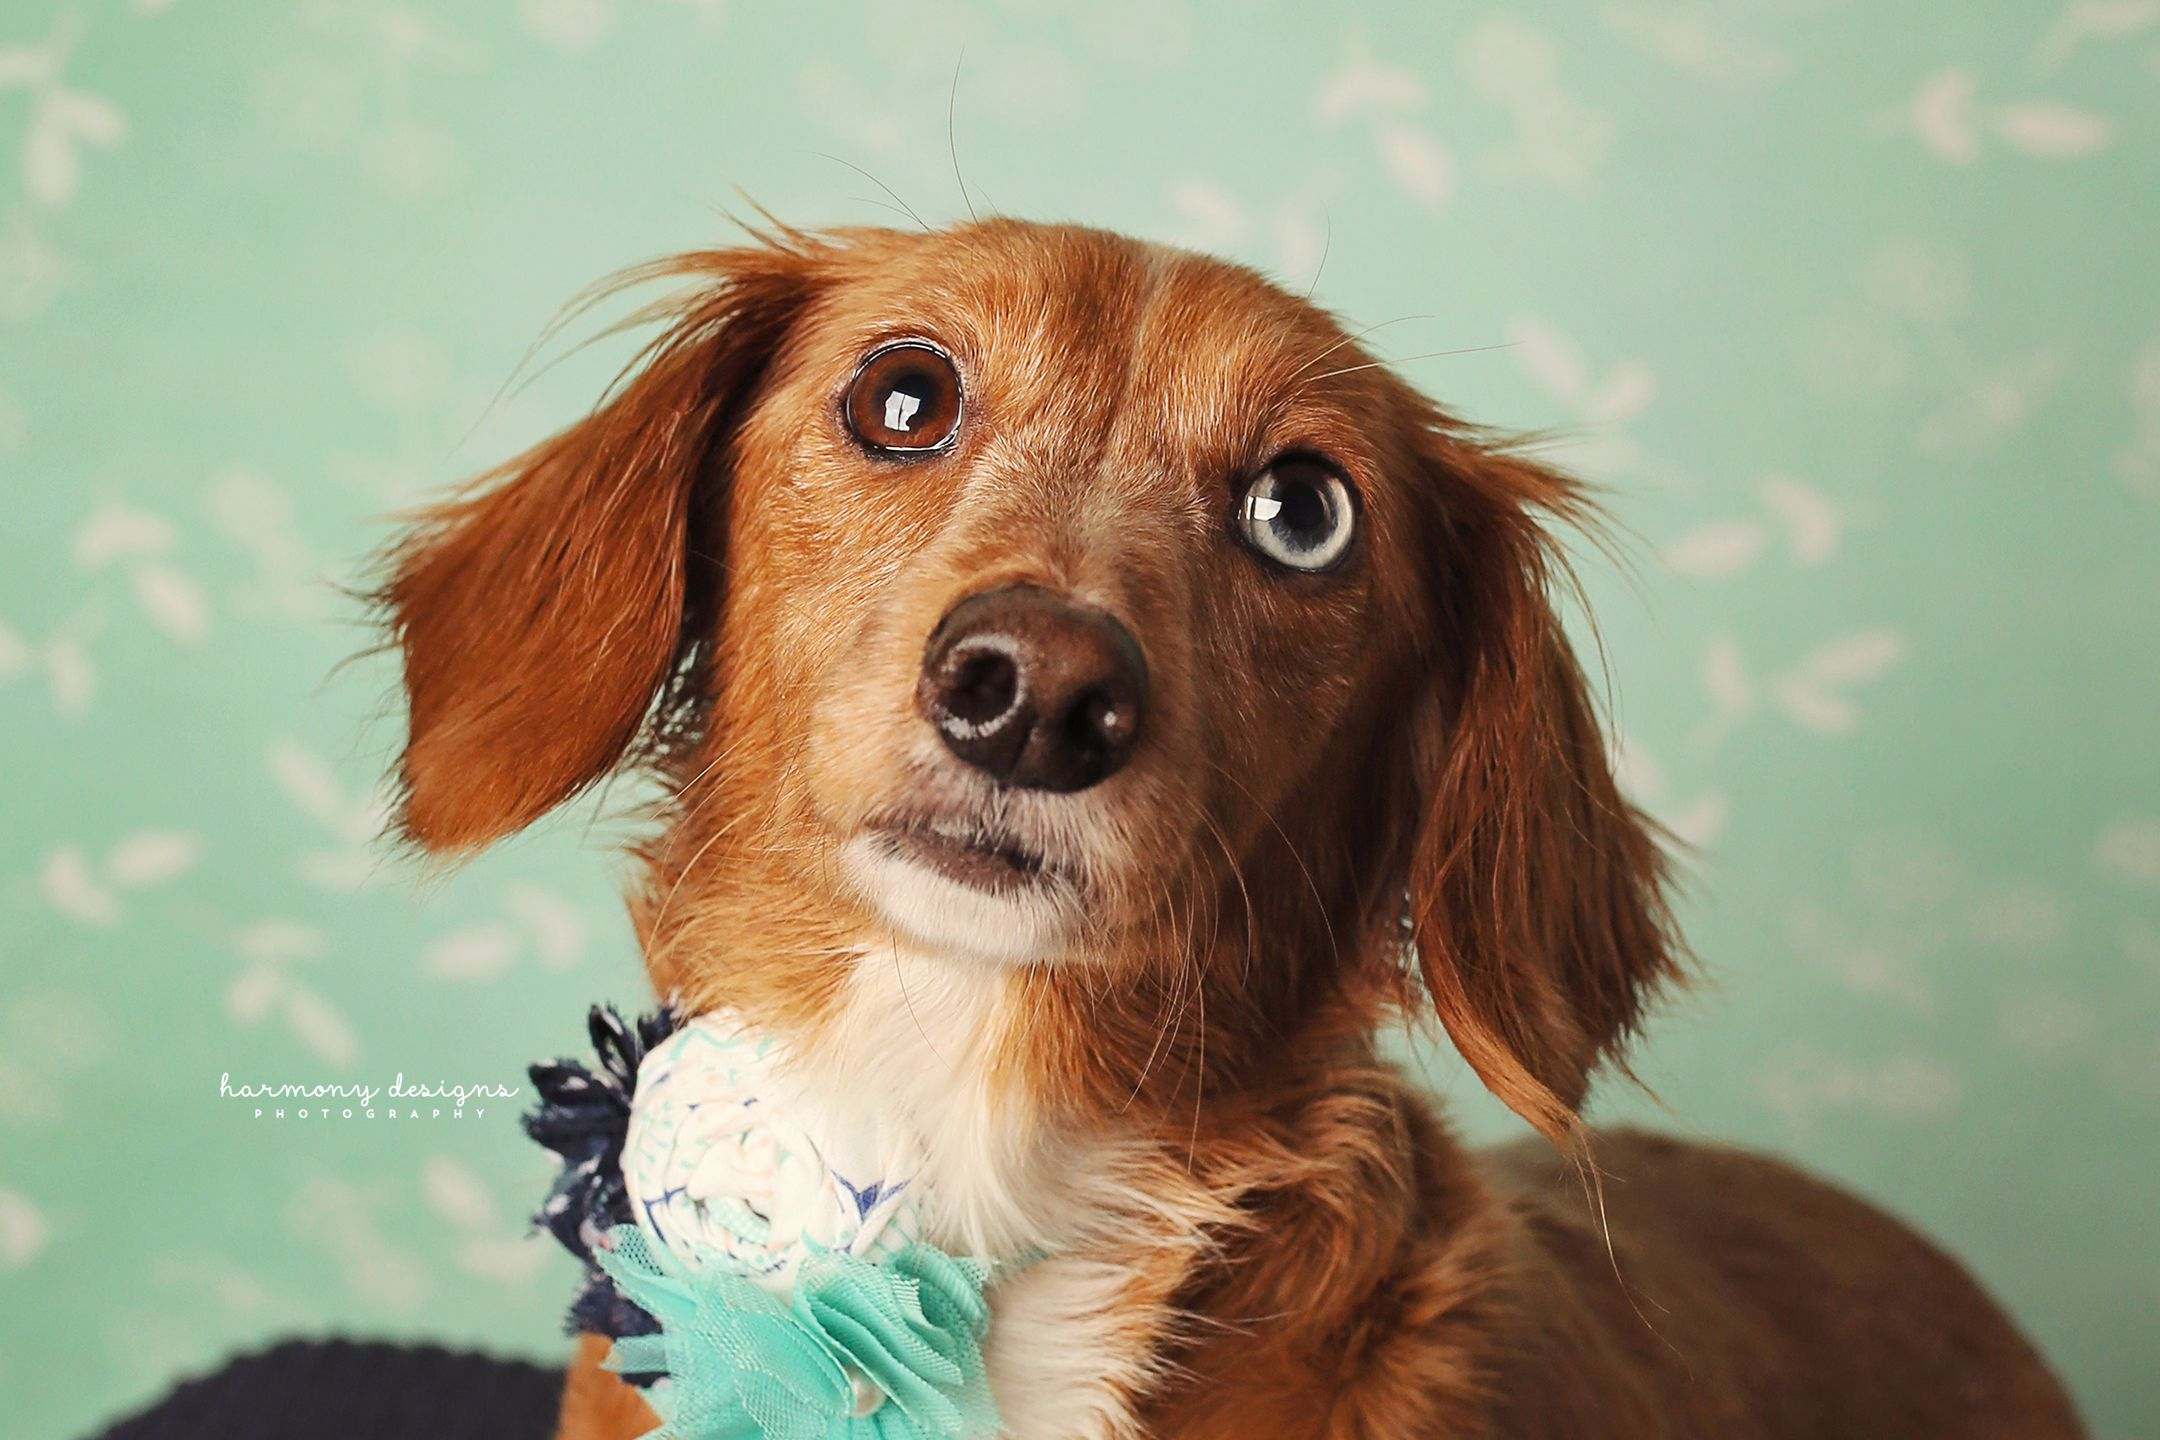 Dachshund dog for Adoption in Nashville, TN. ADN716748 on